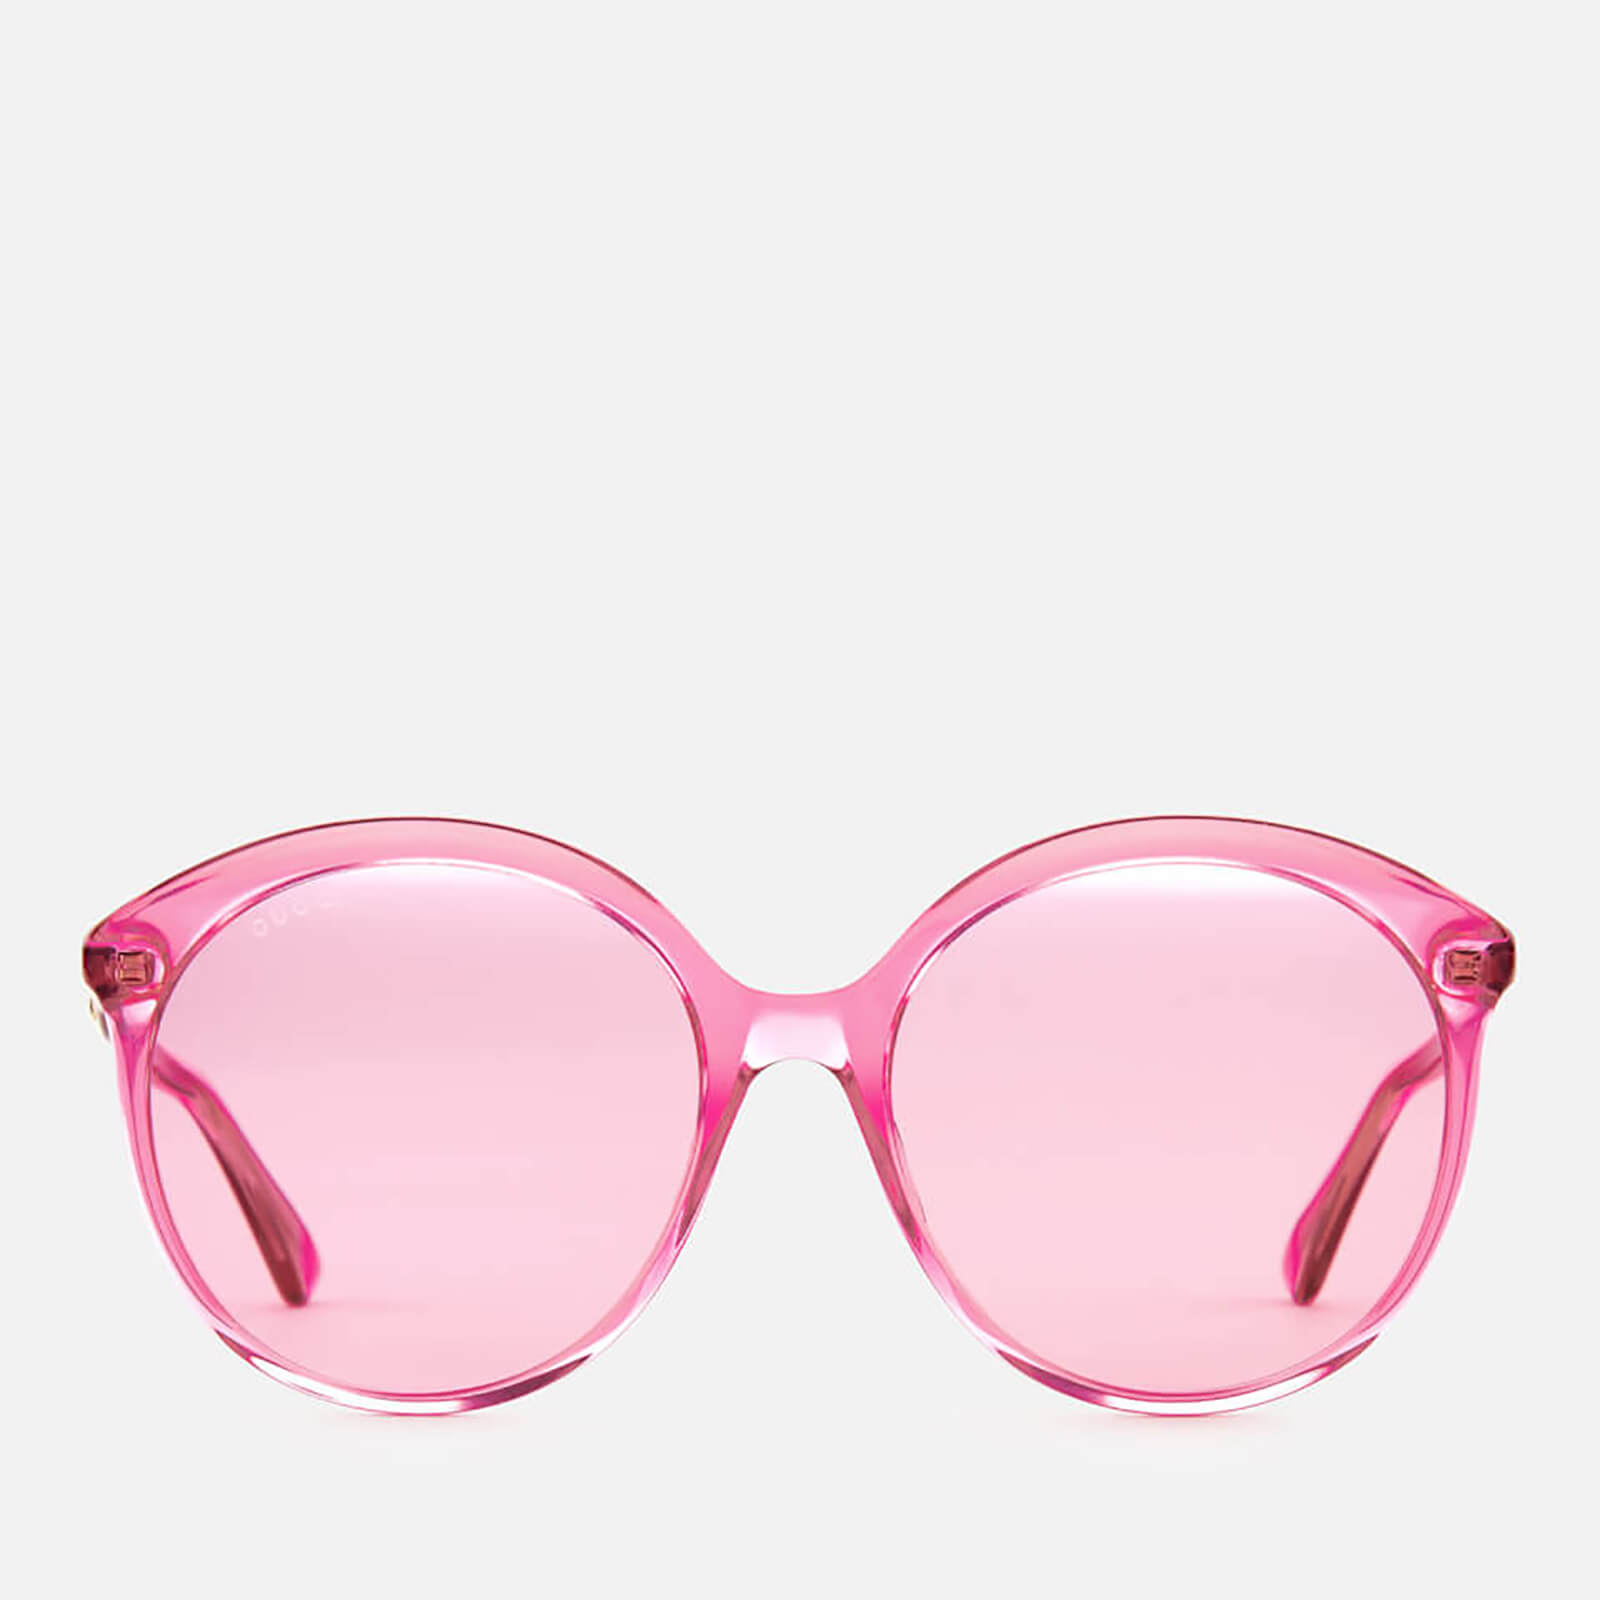 67ed6ddcf4 Gucci Women s Polarised Round Frame Sunglasses - Fuchsia - Free UK Delivery  over £50